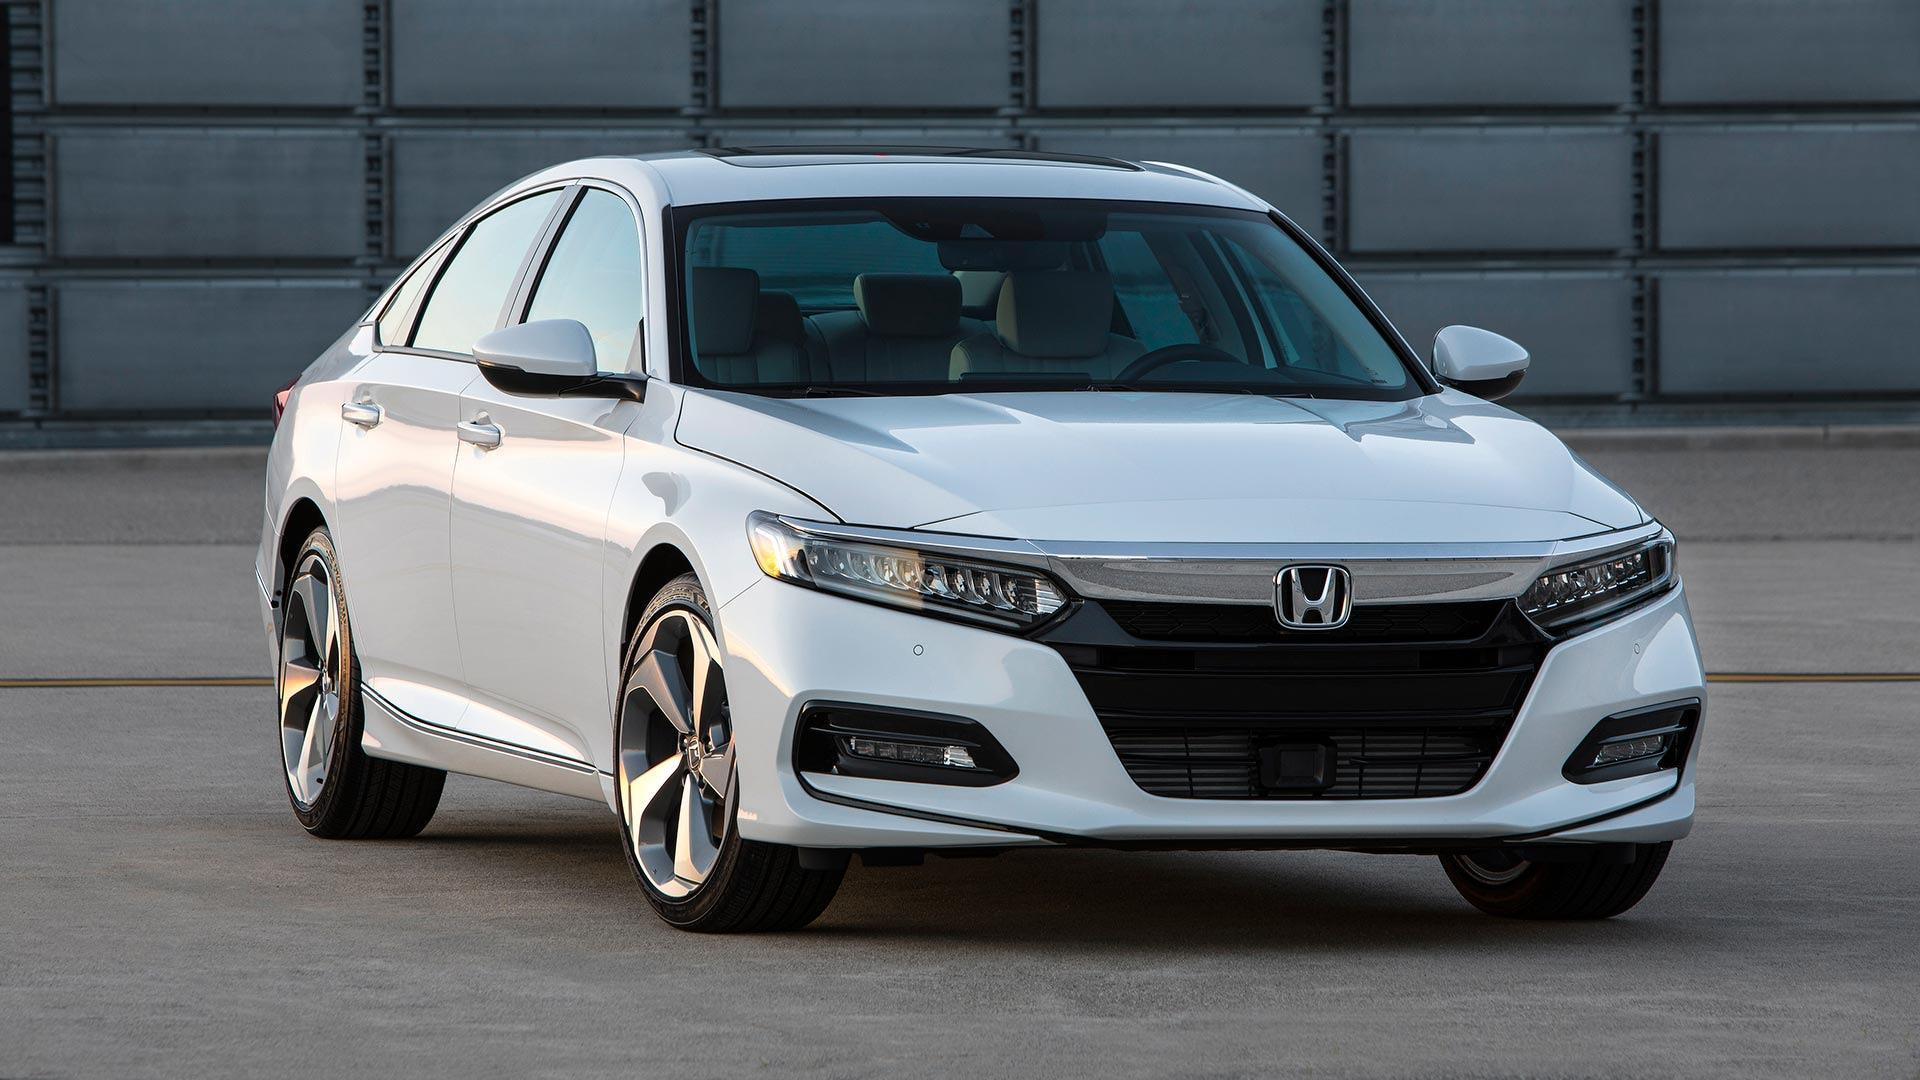 2018 honda accord arrives with new 10 speed automatic for Honda accord 2018 price in usa